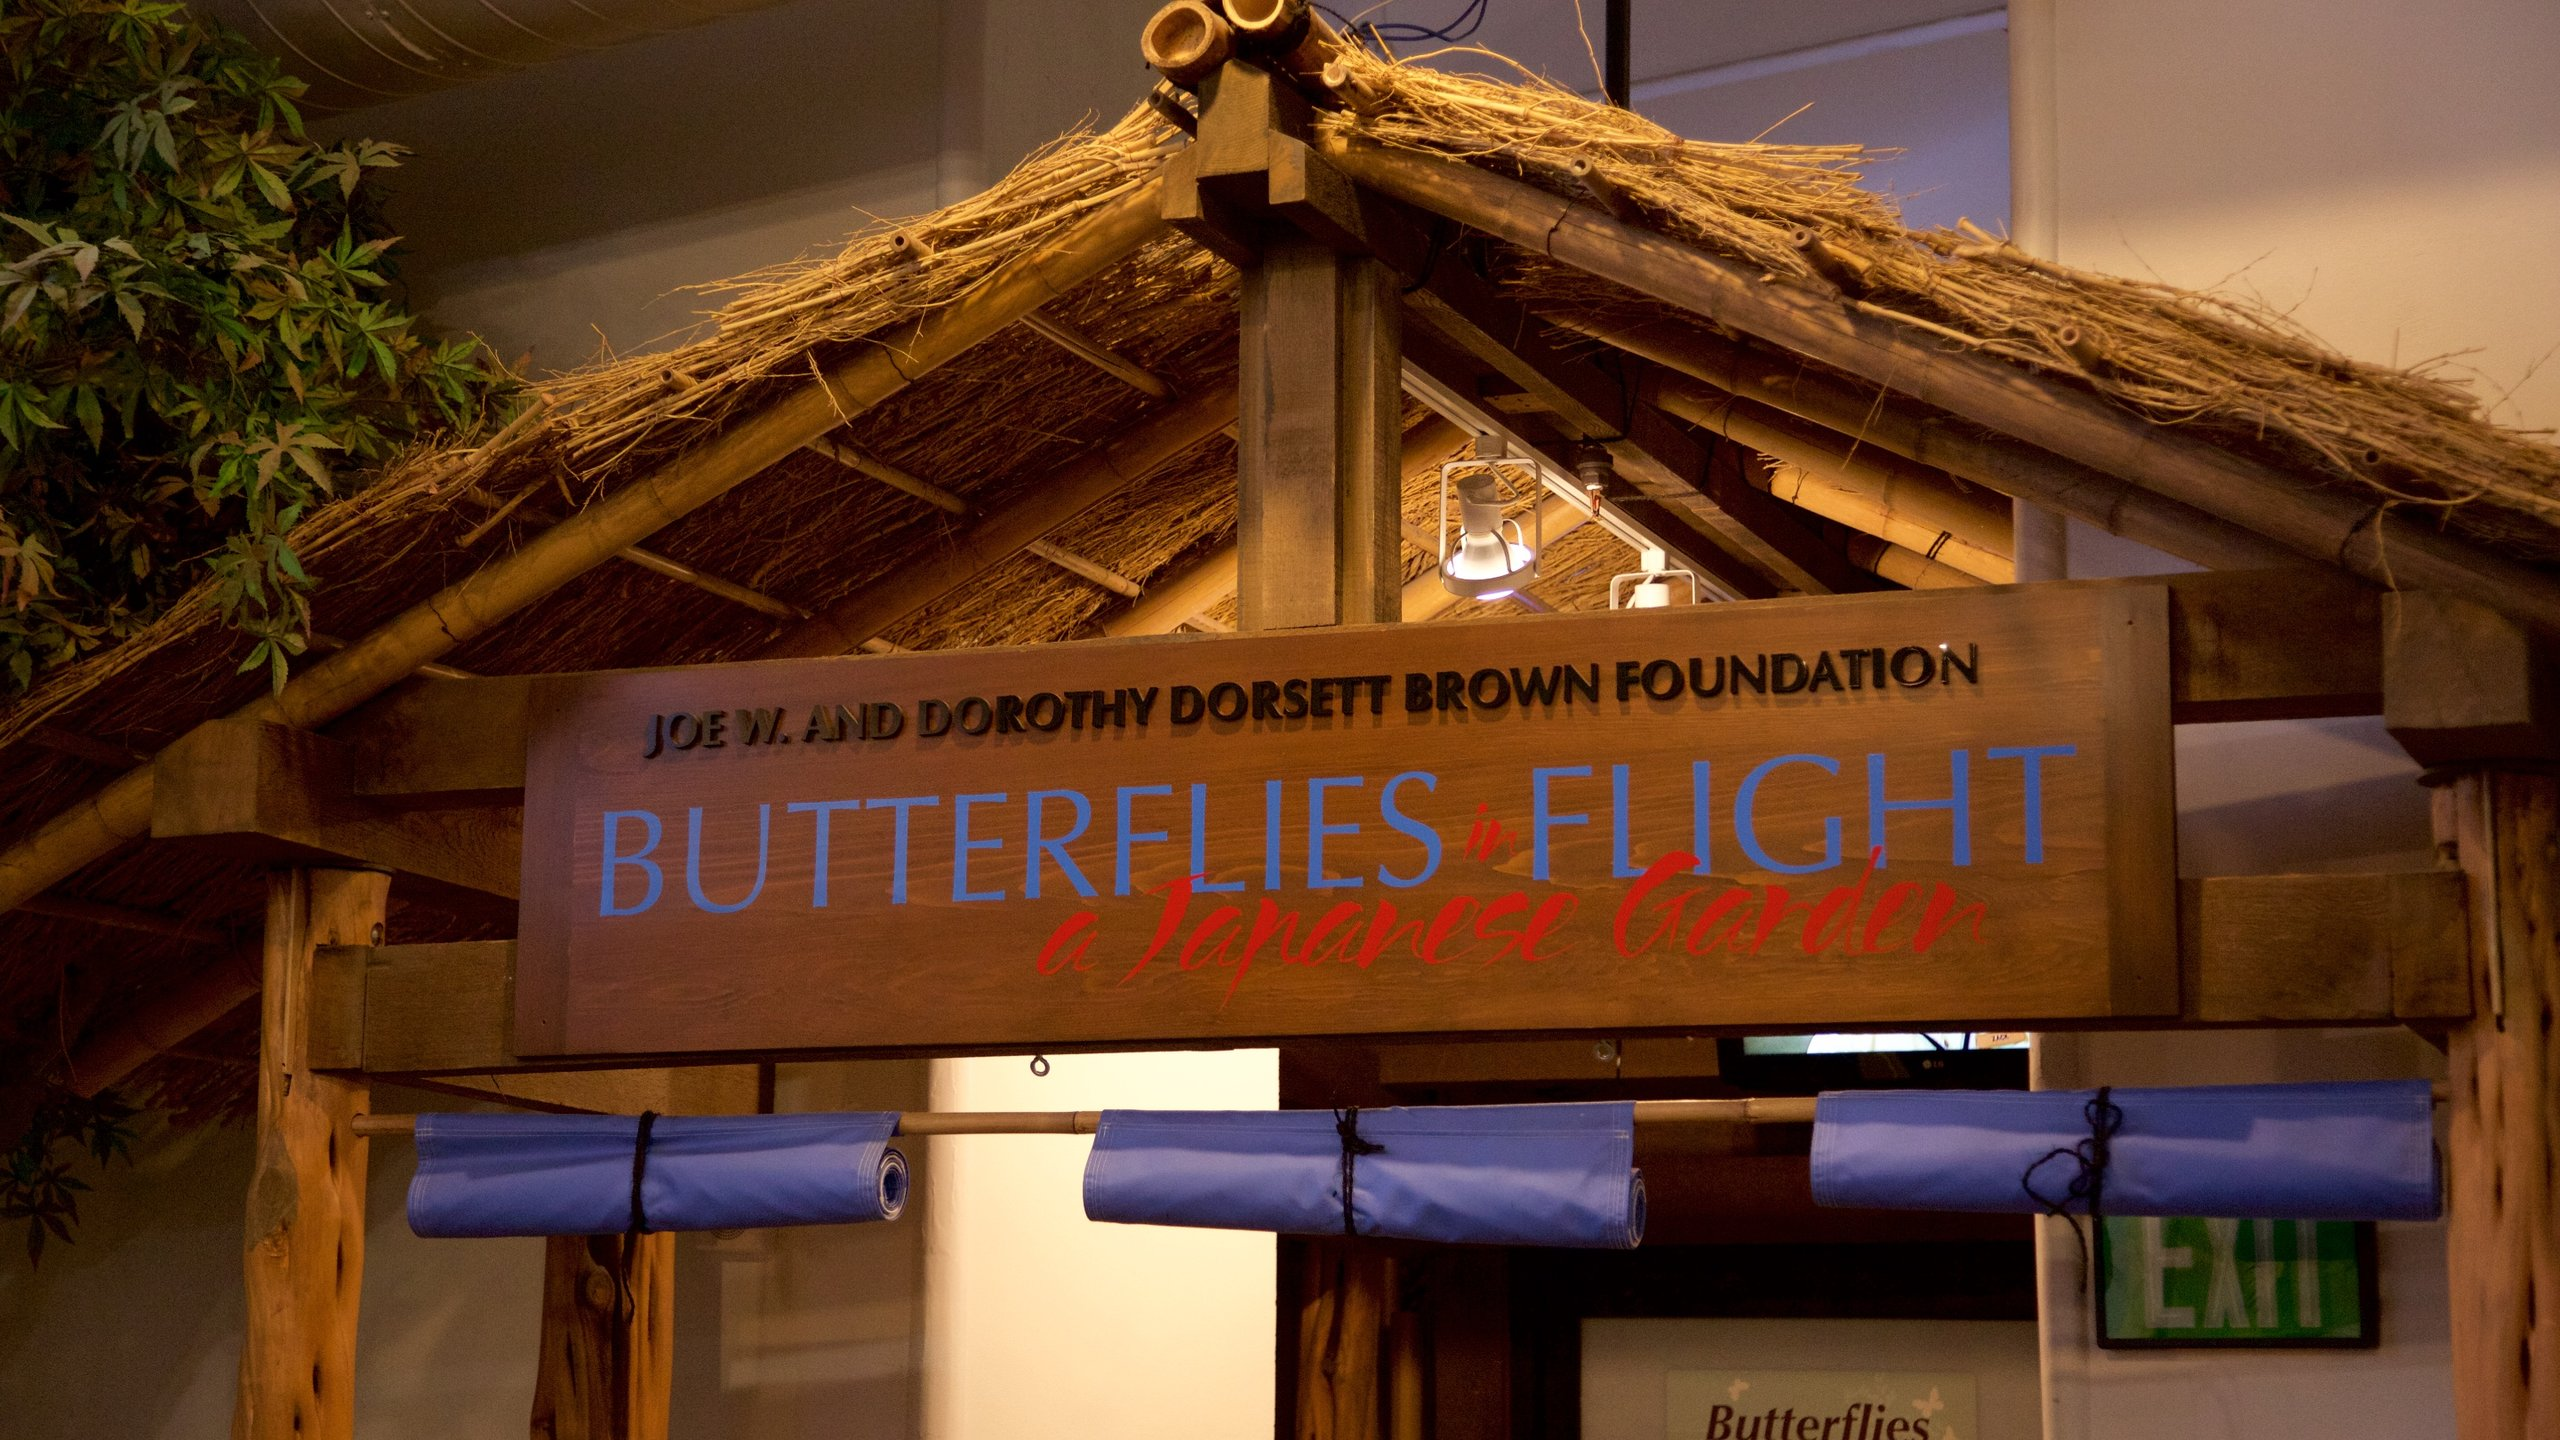 Audubon Insectarium which includes signage and interior views